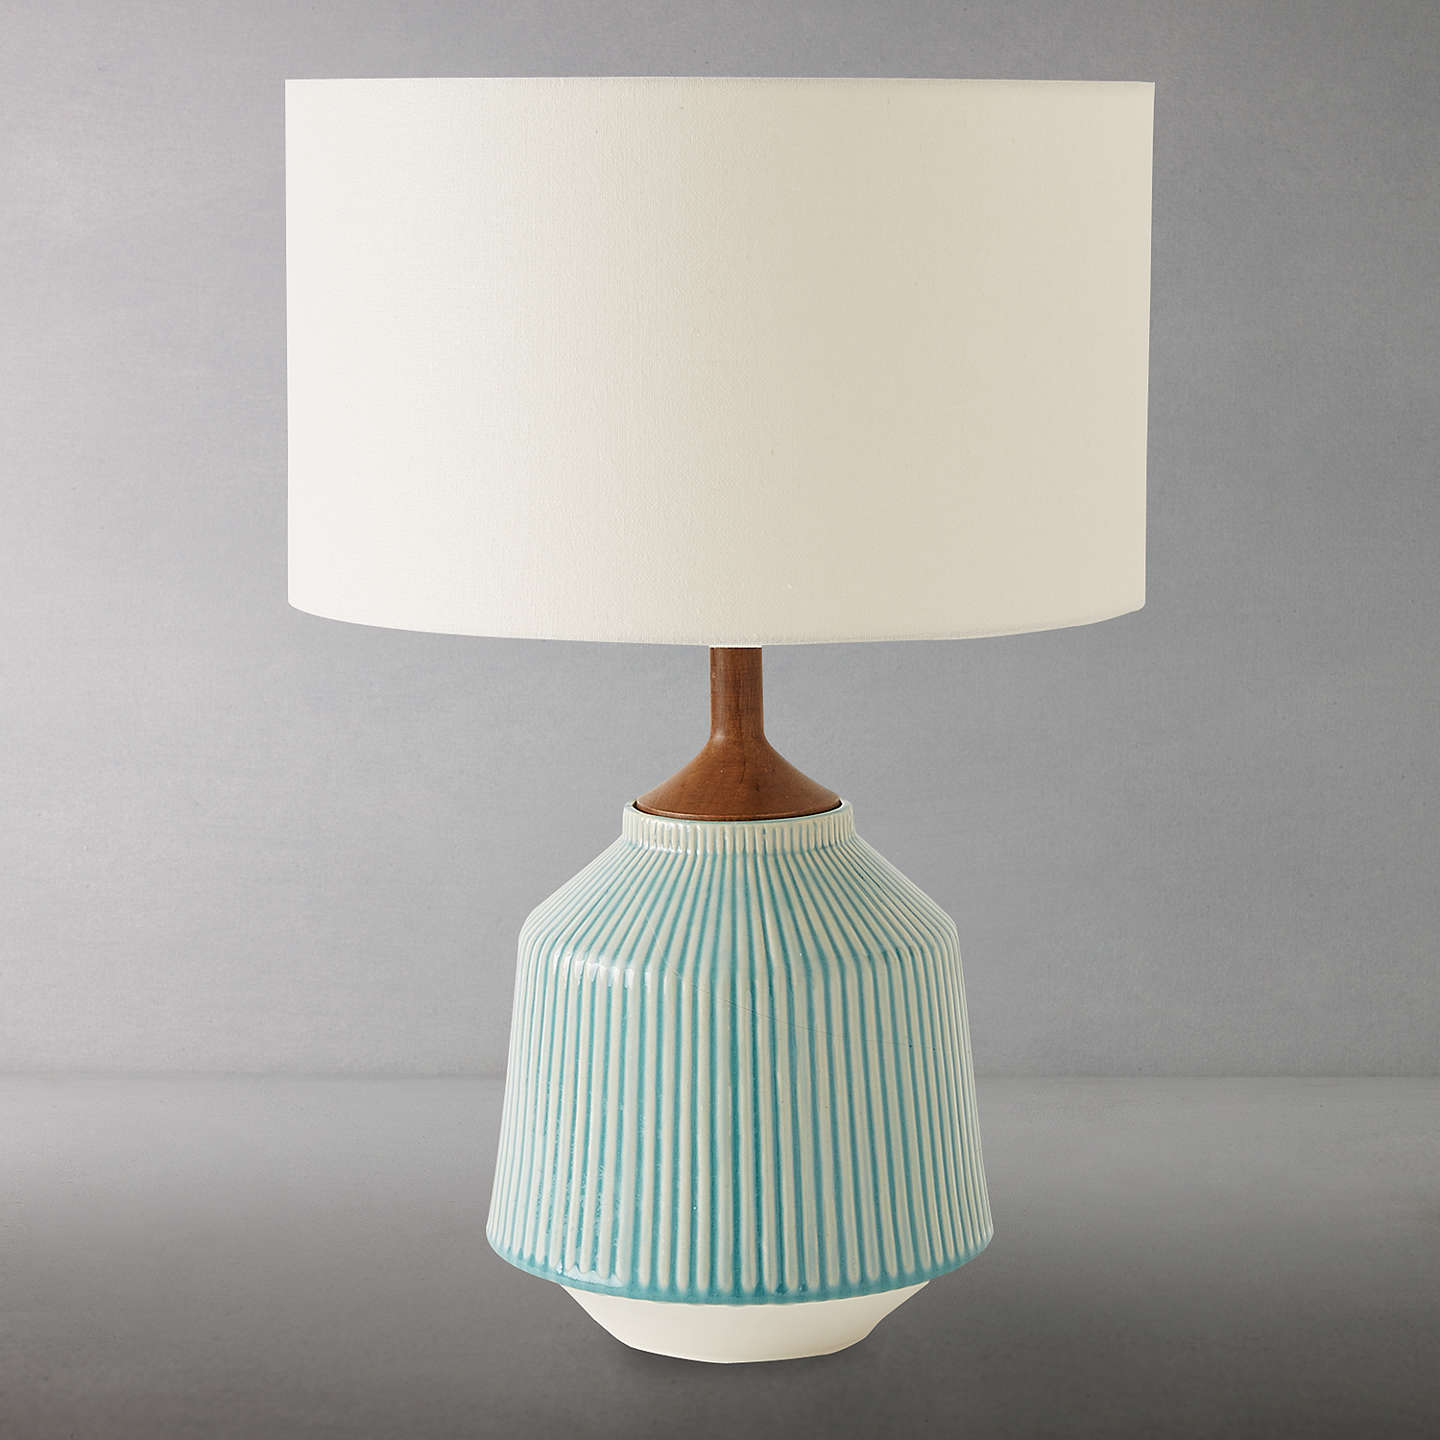 Roar rabbit for west elm ripple large ceramic table lamp at john lewis buyroar rabbit for west elm ripple large ceramic table lamp turquoise online at johnlewis aloadofball Image collections